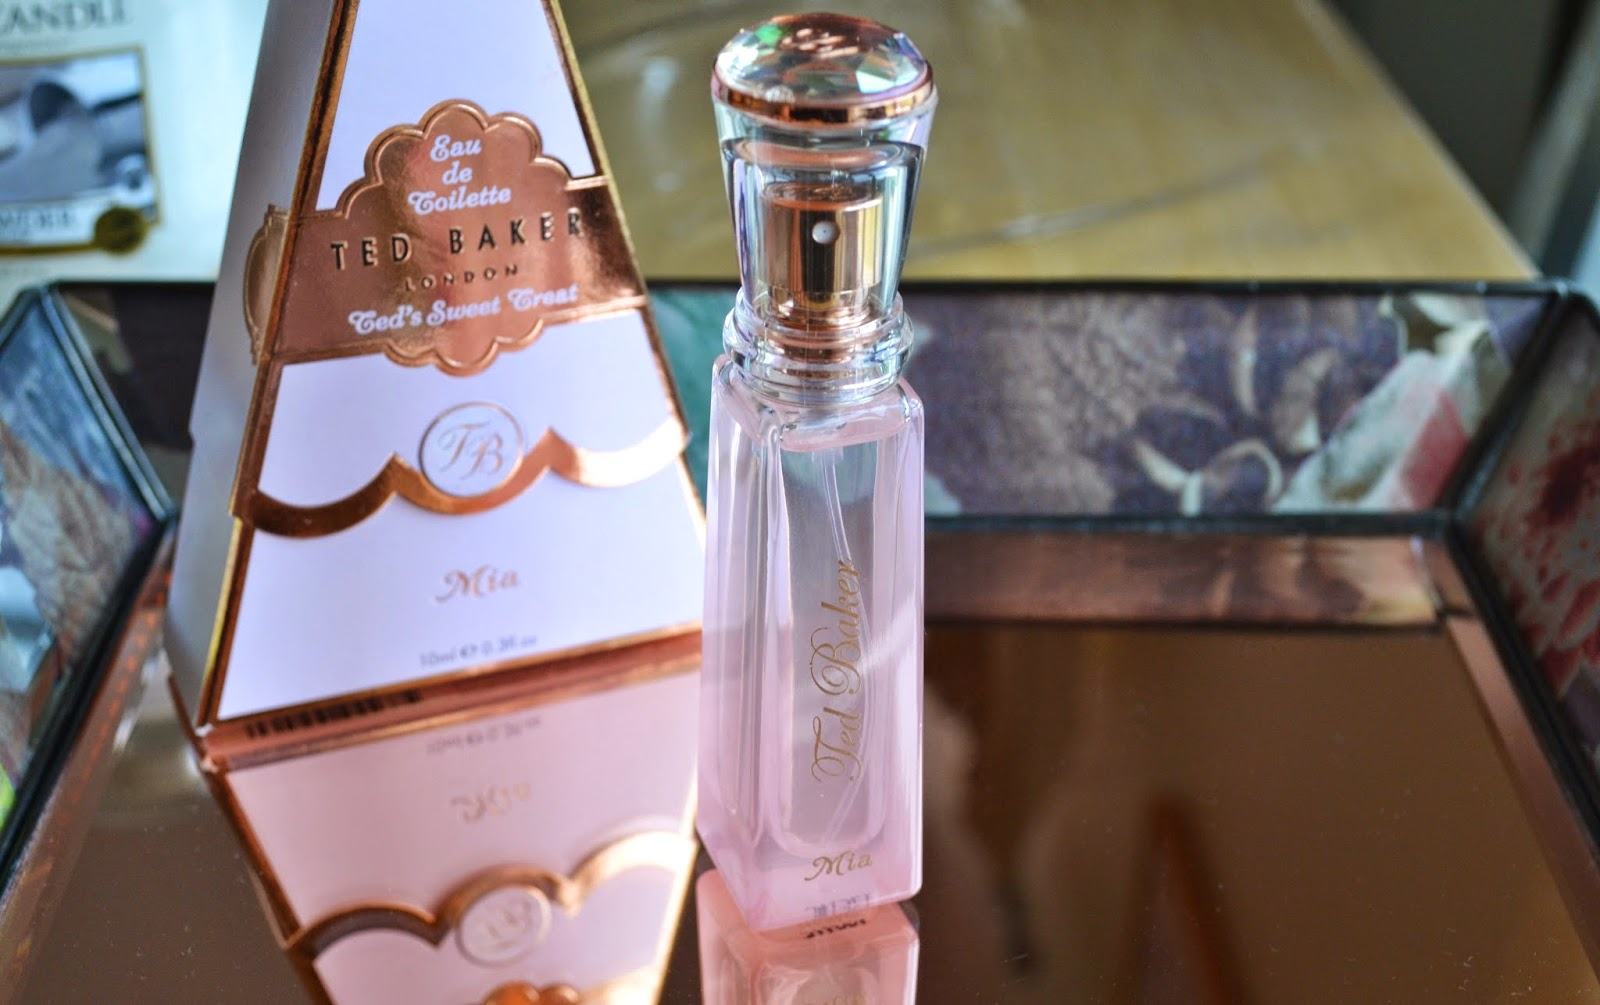 Ted Baker Mia Purse Spray Fragrance - Aspiring Londoner